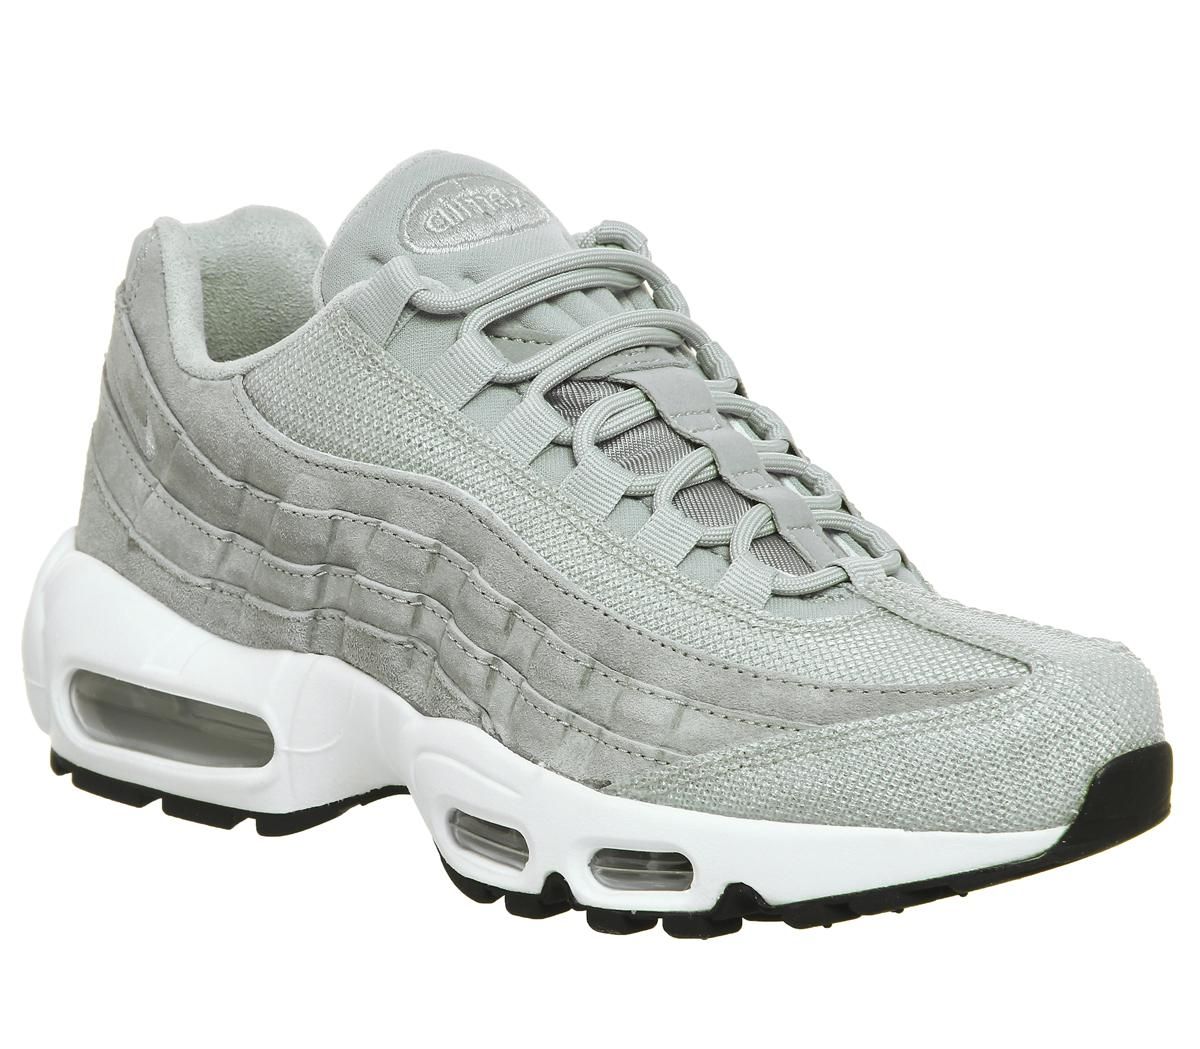 Save Up To 60% Perfect Basic Nike Air Max 95 Essential Shoes